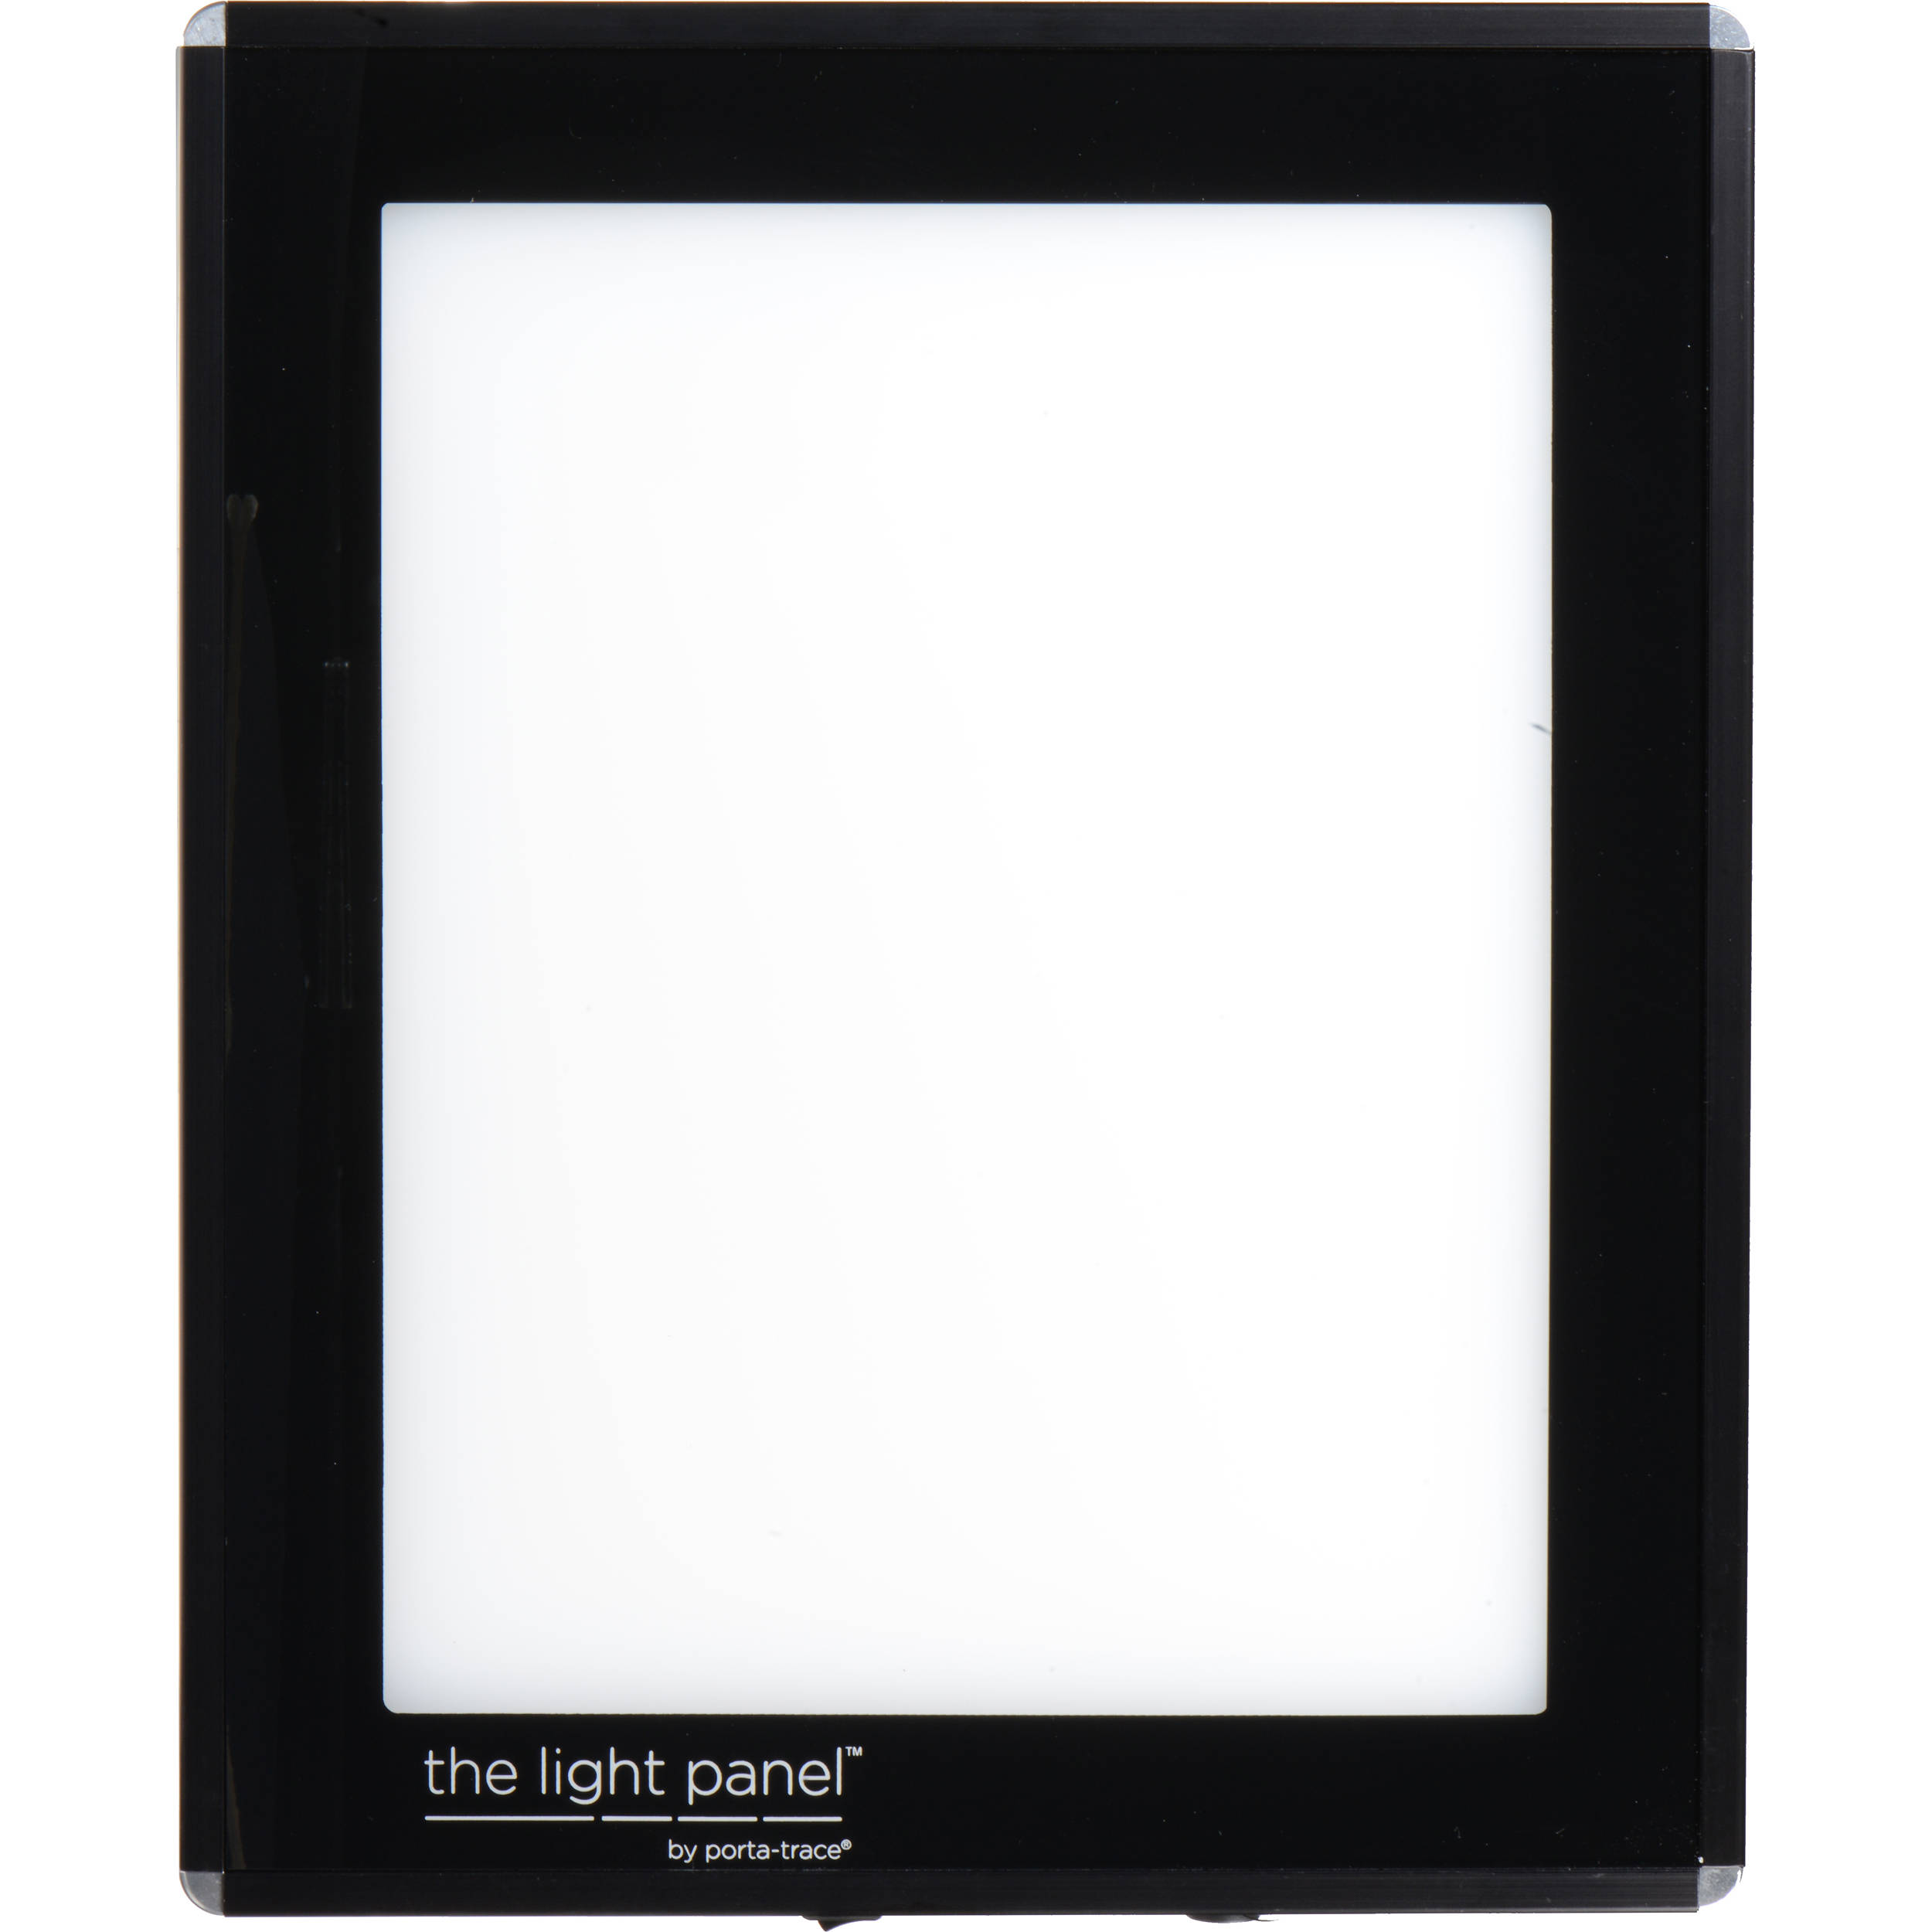 Porta-Trace / Gagne LED Light Panel 811-LP-BLACK B&H Photo